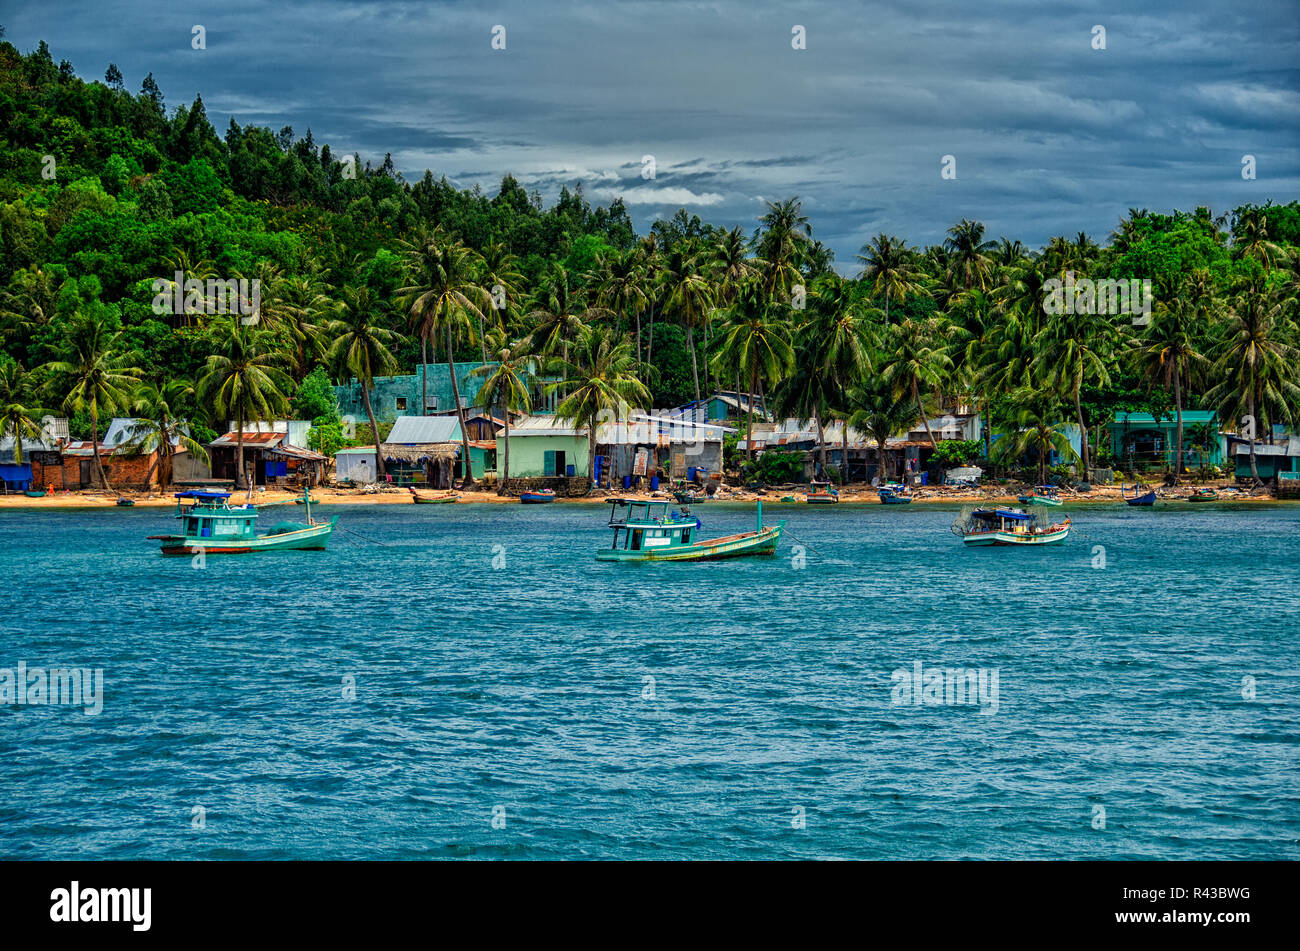 View of Phu Quoc Island in Vietnam from the Ocean - Stock Image